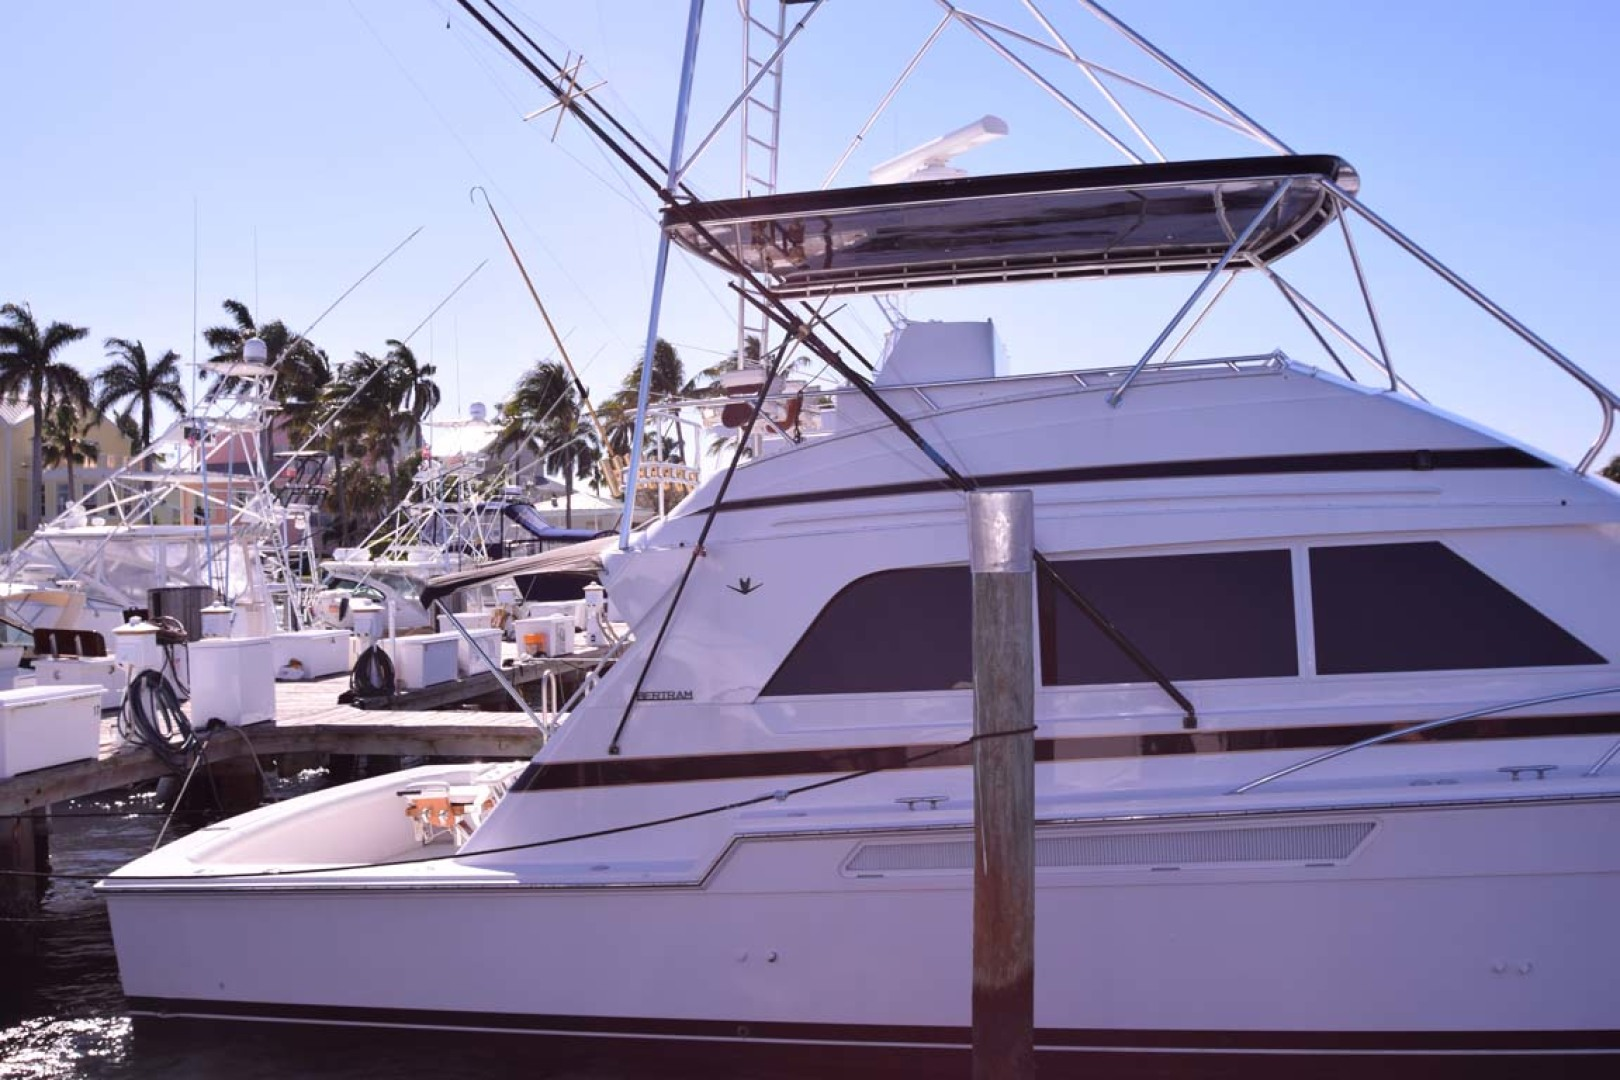 Bertram-60 Convertible 1998-CHARDAN Lighthouse Point-Florida-United States-Profile at Dock-1122641 | Thumbnail